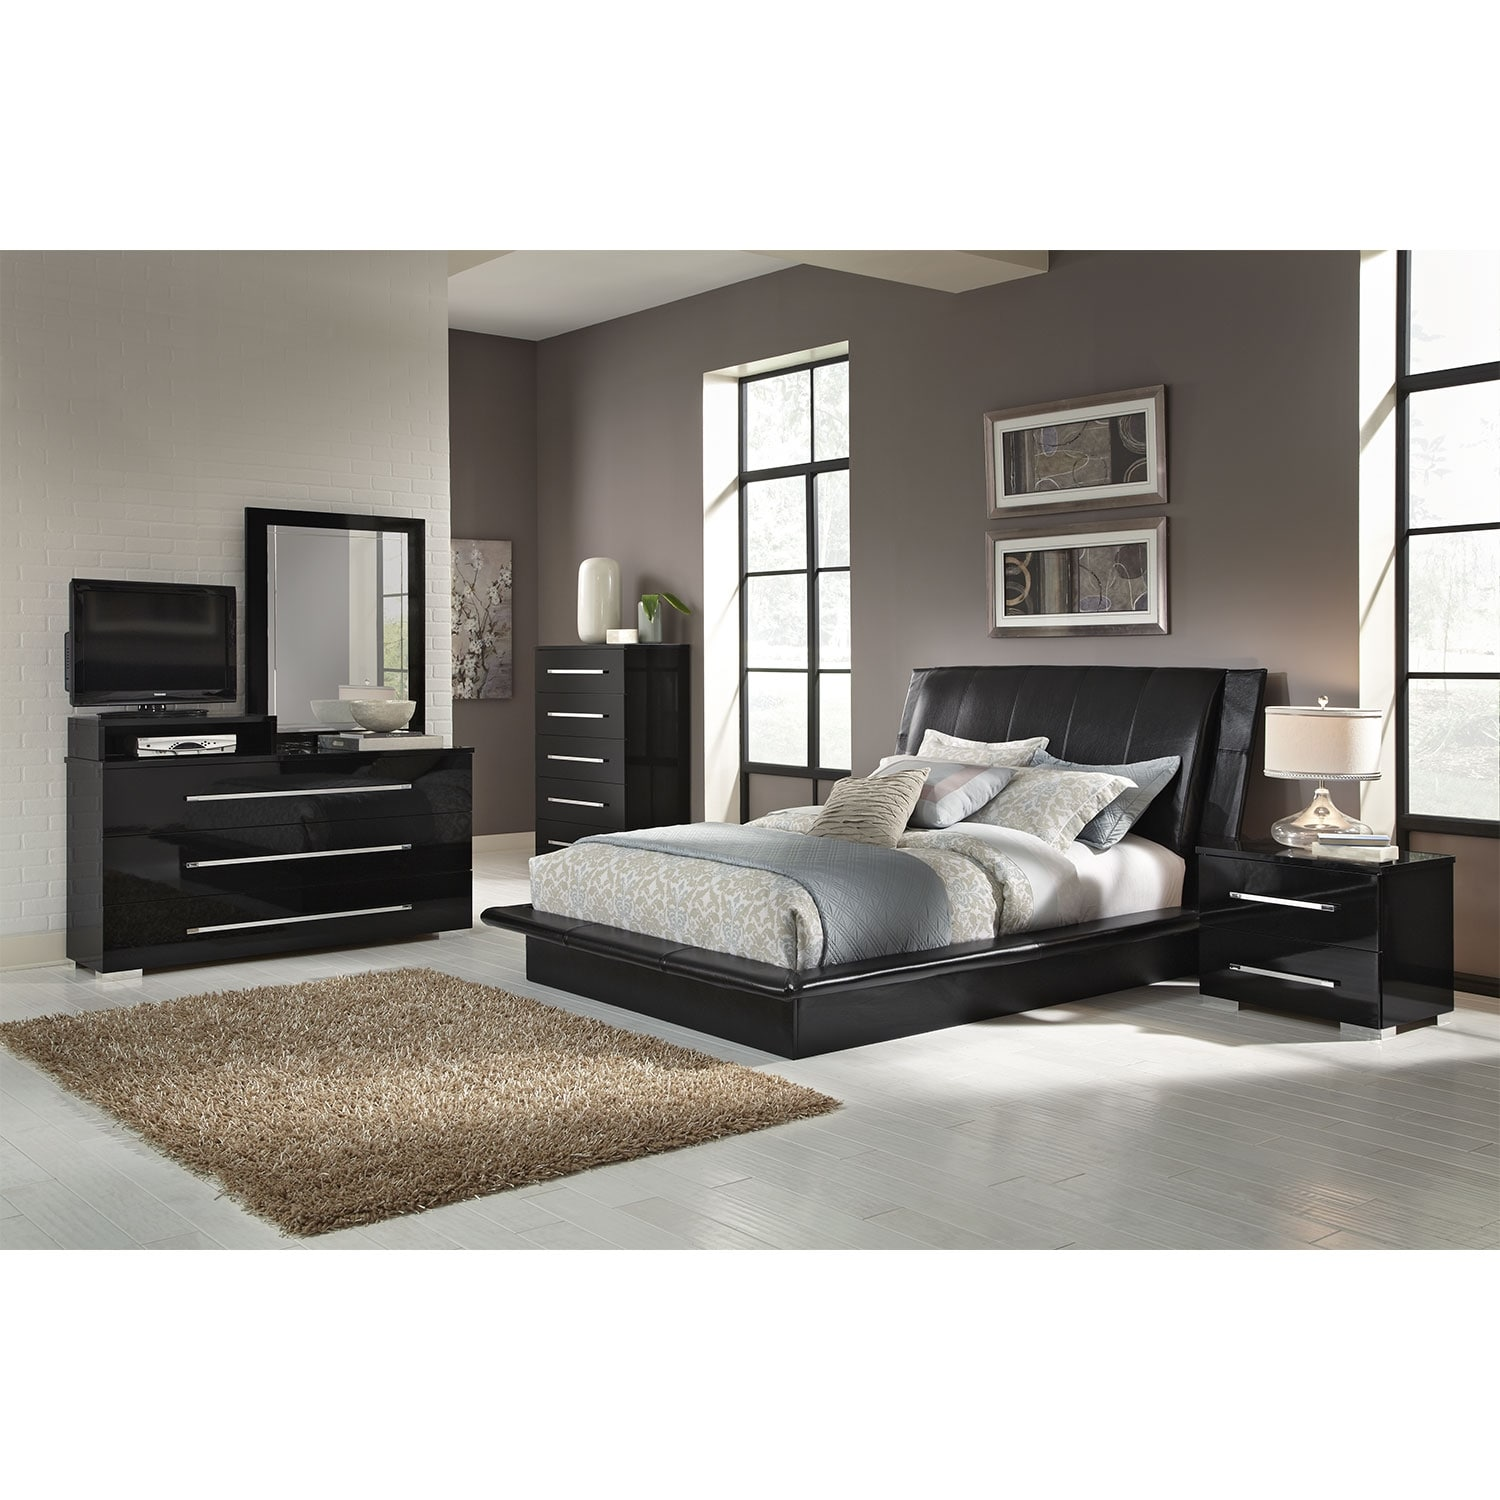 Dimora black 7 pc queen bedroom value city furniture - Black queen bedroom furniture set ...